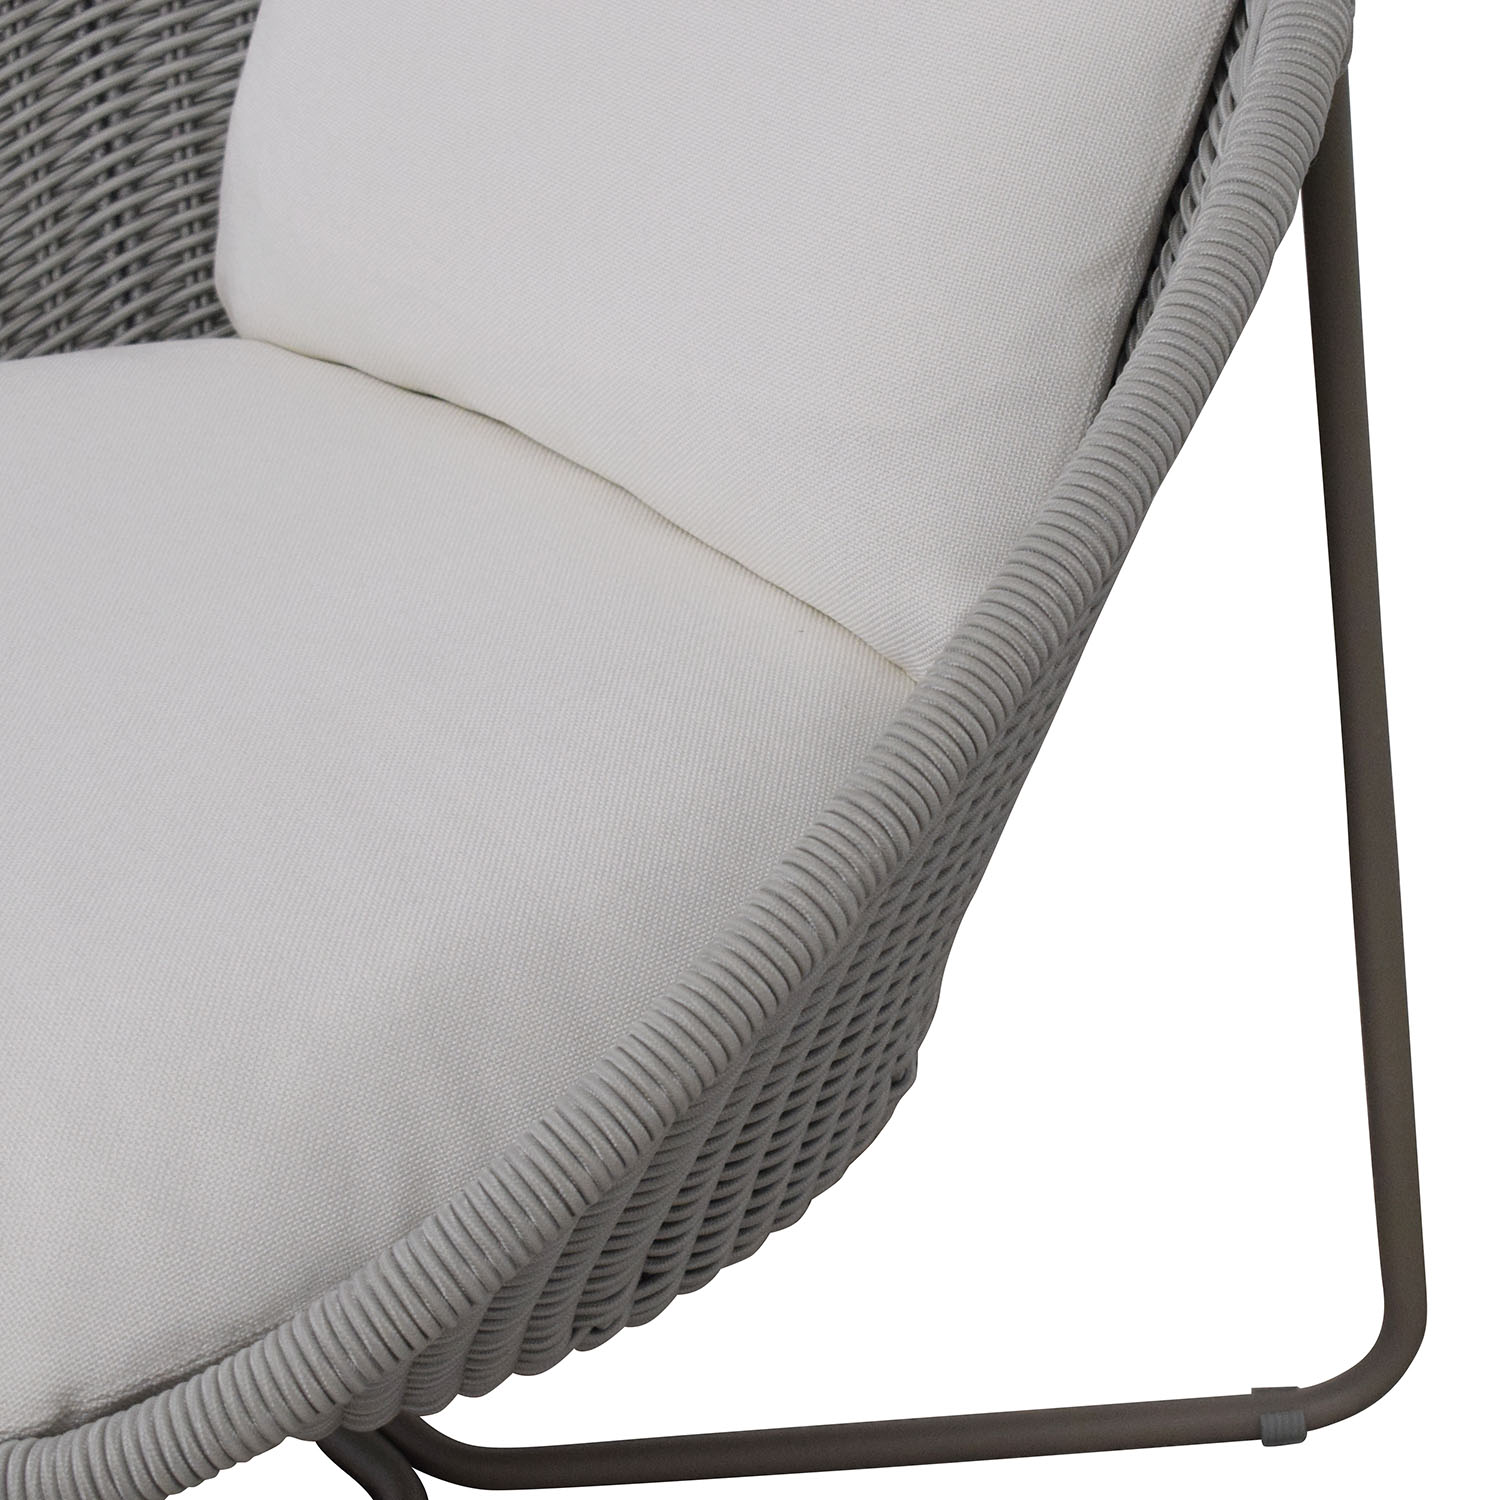 Crate & Barrel Morocco Oval Lounge Chair with Cushion Crate & Barrel